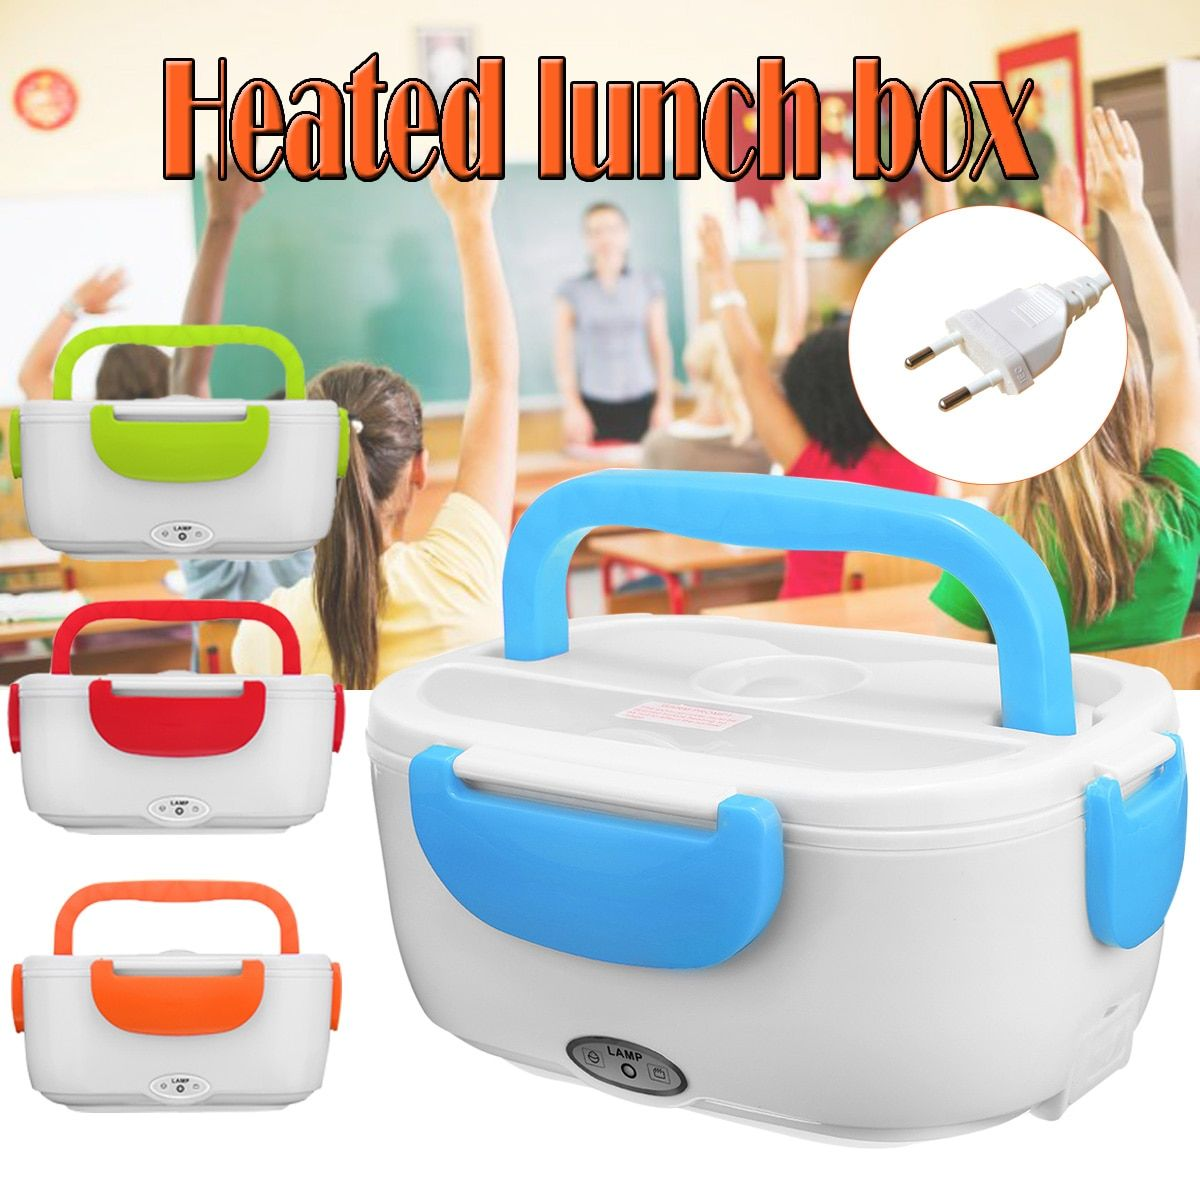 220V 1.2L Portable Electric Heating Lunch Box Bento Storage Office School Heating Rice Container Food Warmer Lunchbo